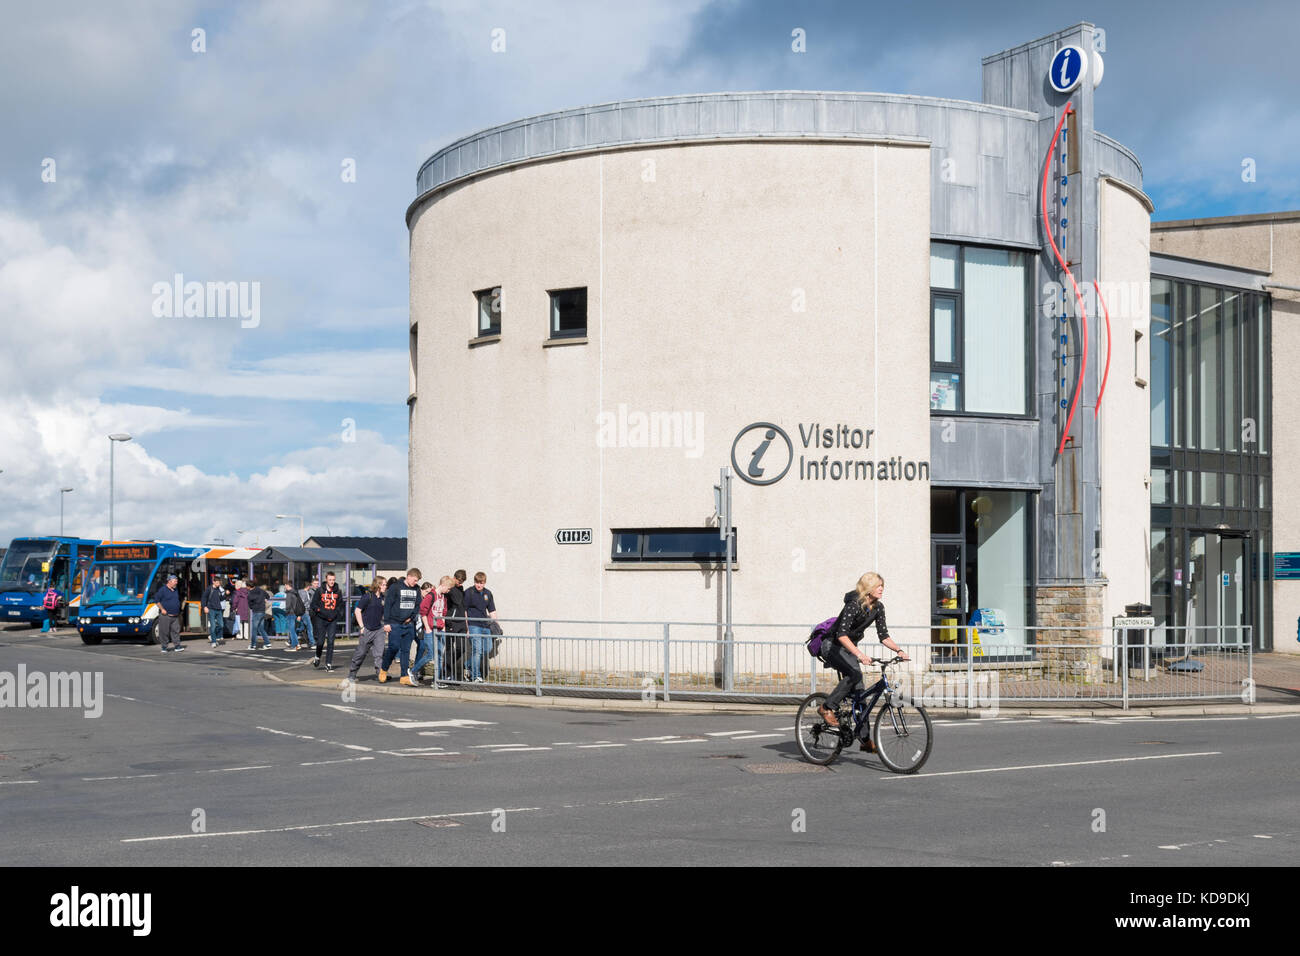 Kirkwall Visitor Information Centre, Orkney, Scotland, UK - Stock Image